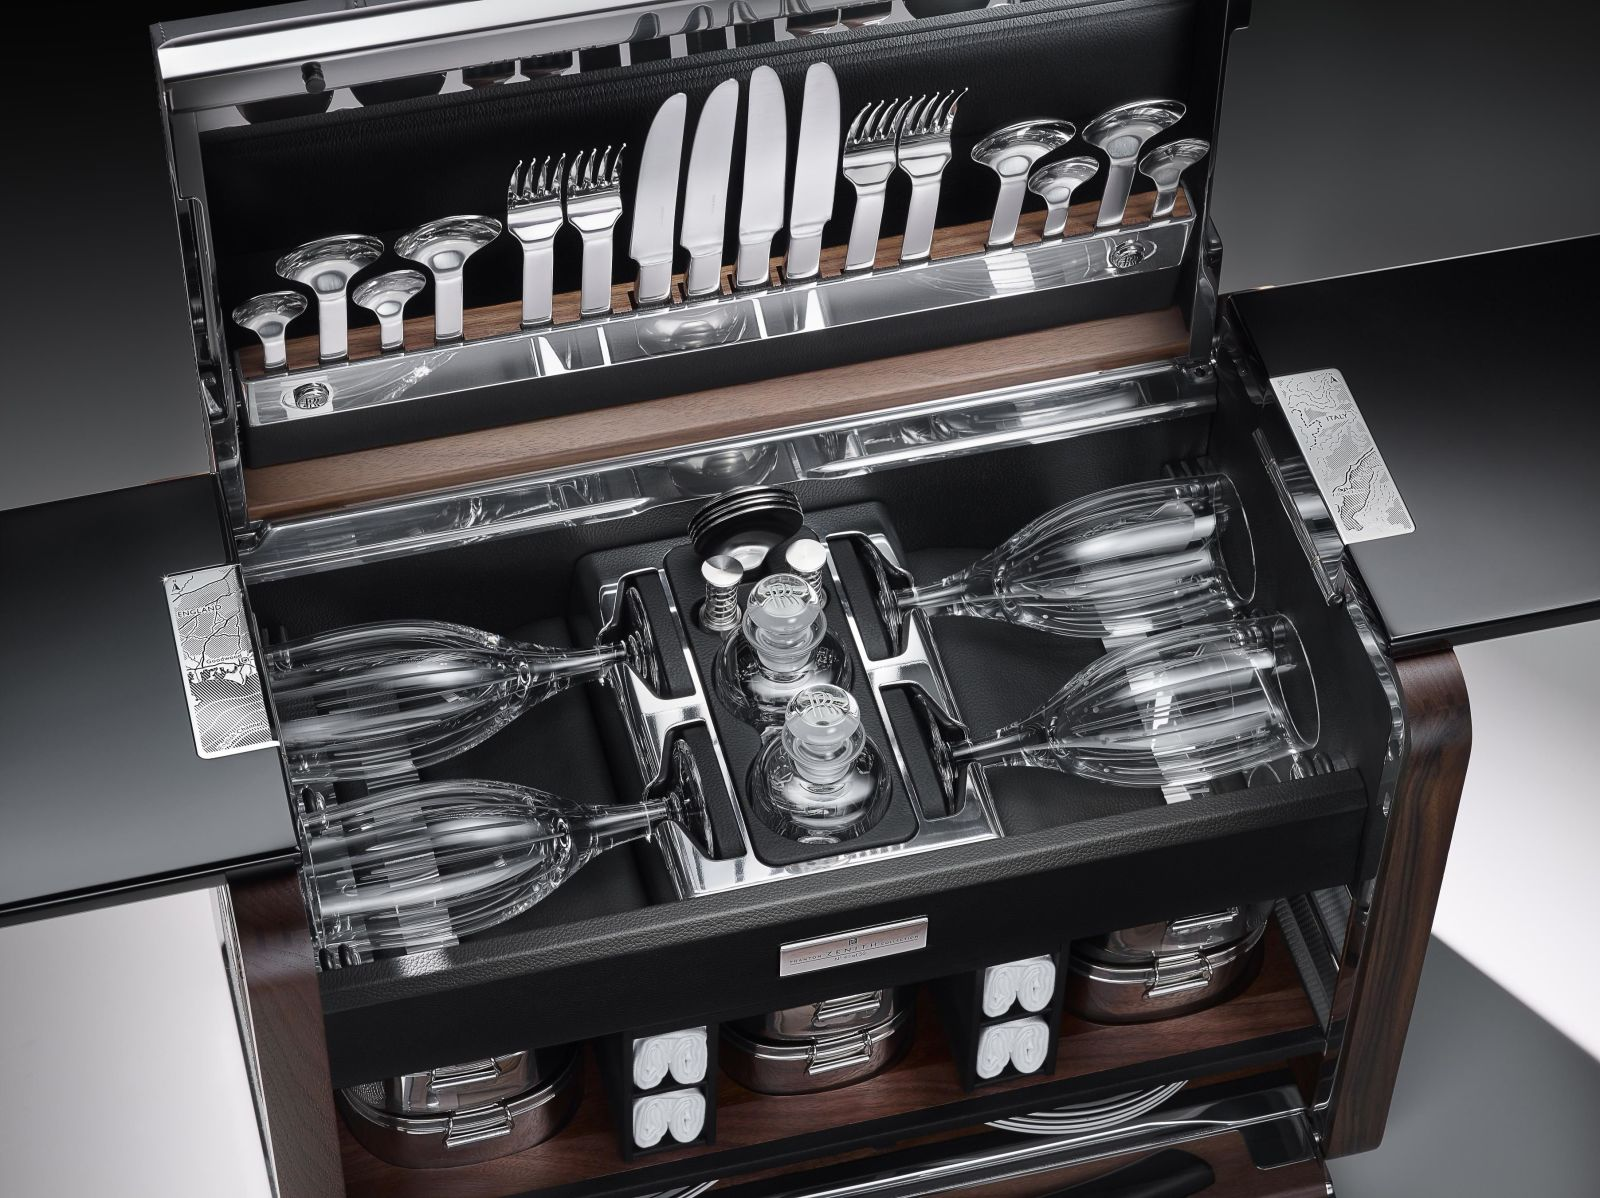 Rolls-Royce Phantom Picnic Hamper